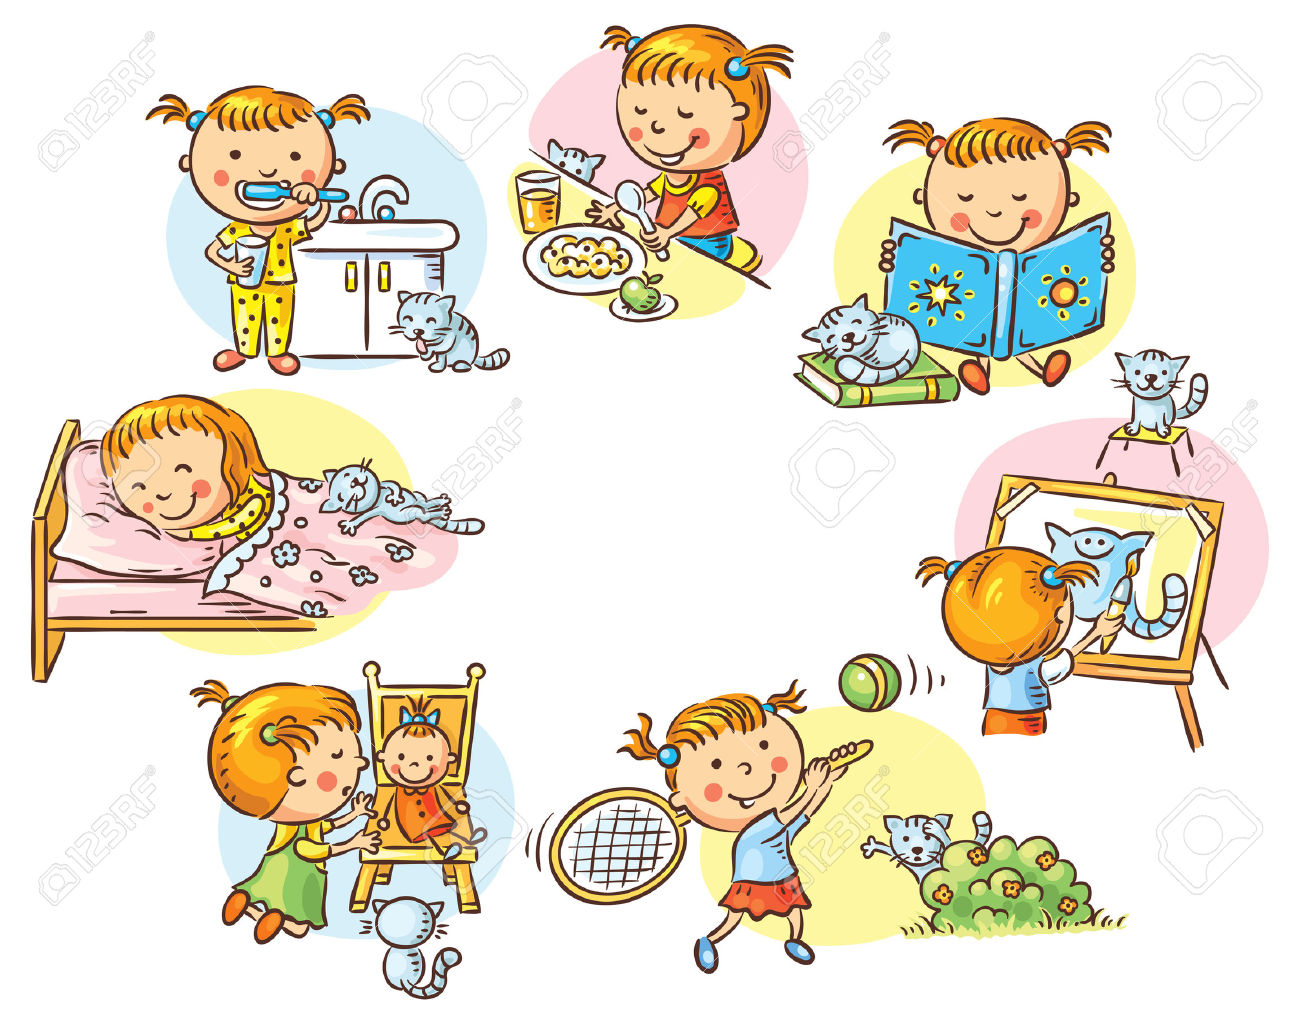 Activities clipart cartoon. Daily activity station